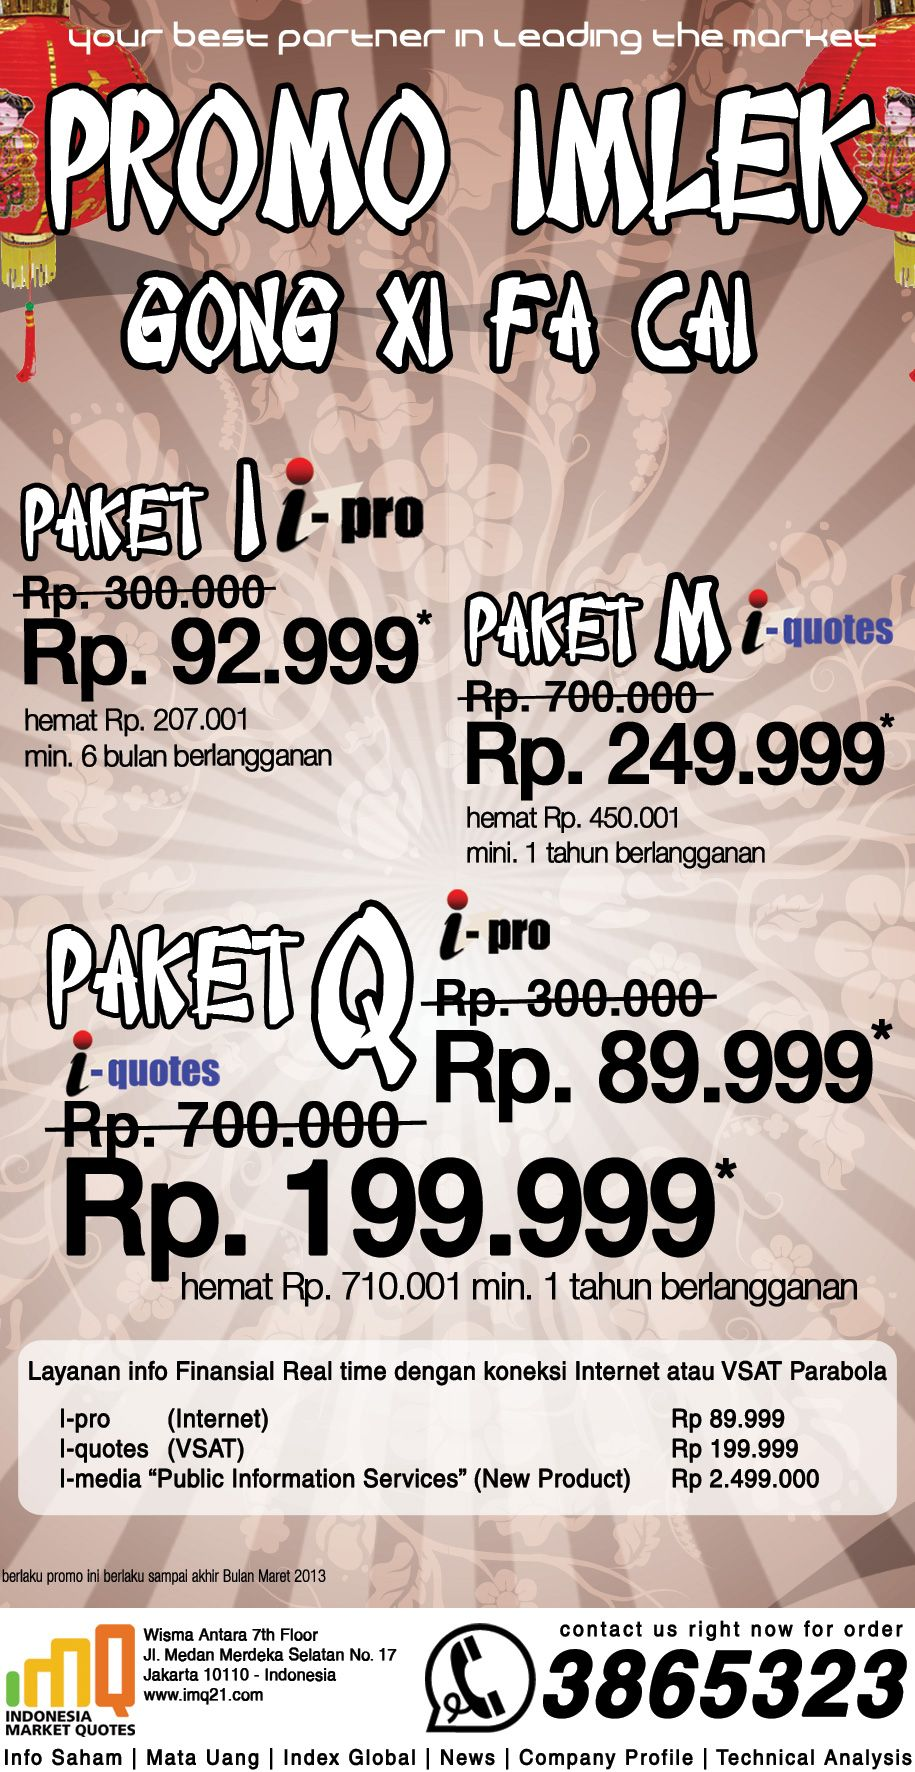 promo imlek newspaper ad imq product layout template pinterest